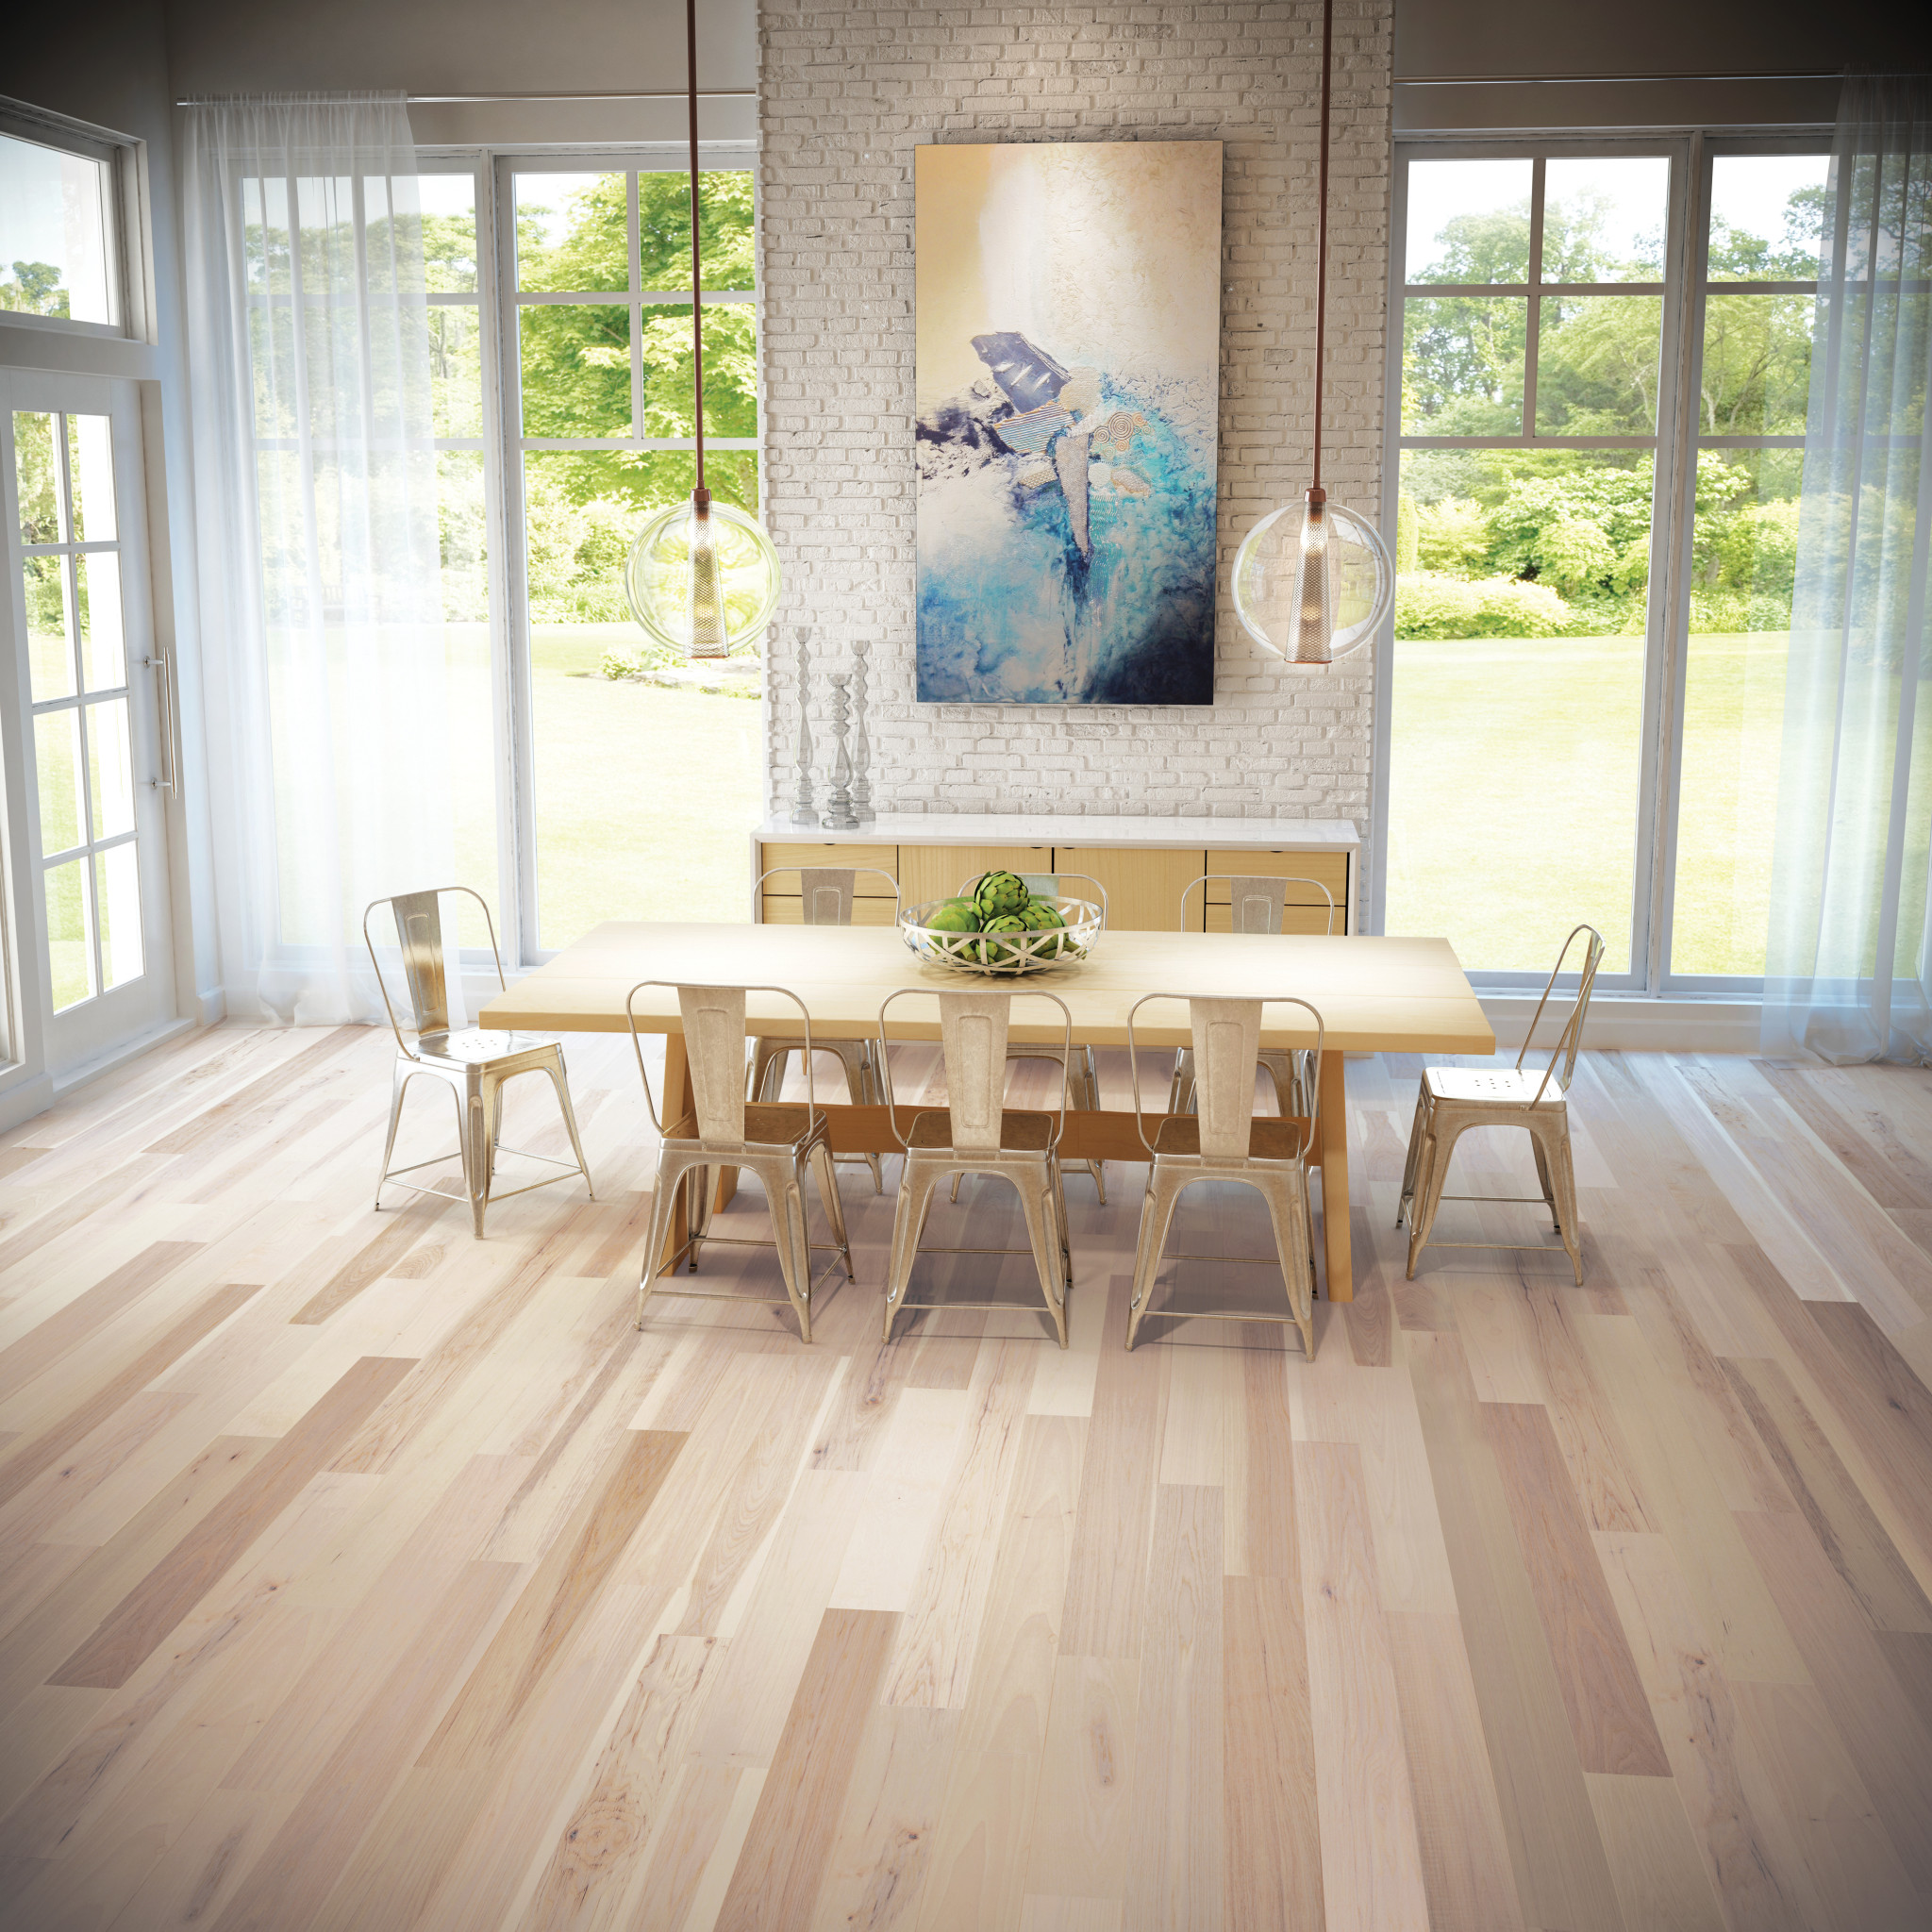 Dining Room Flooring: Tampa Hardwood Floors In Distressed & Smooth, Wide Plank